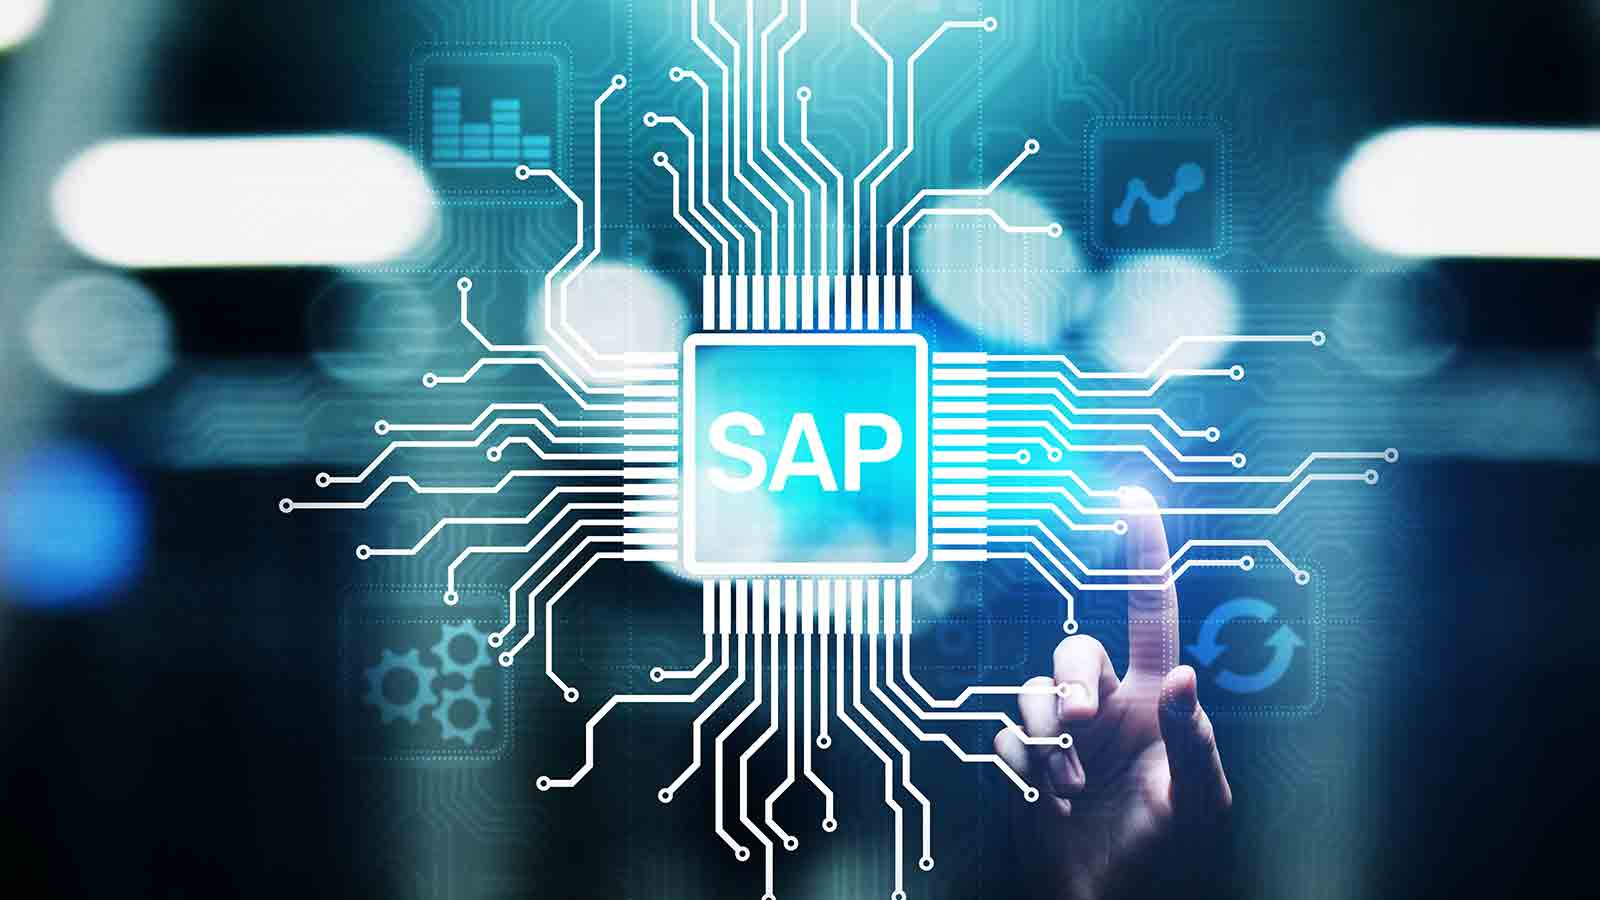 Digital invoicing via SAP Business One